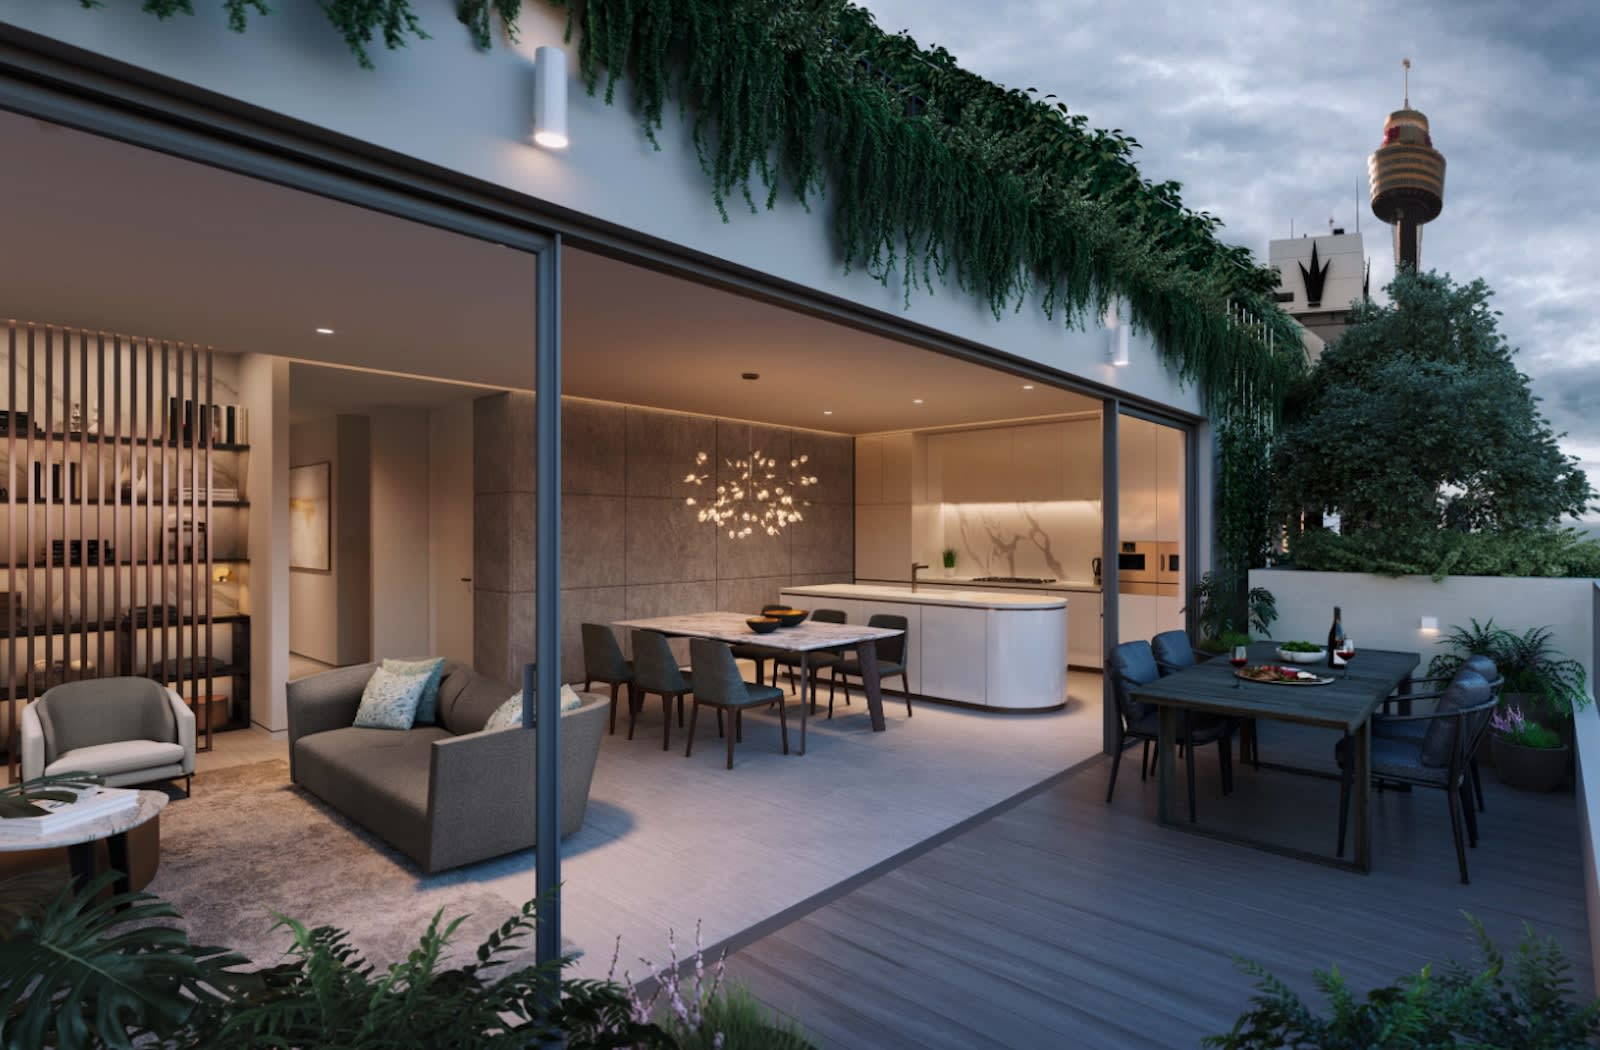 Four new apartments in the City of Sydney from $592,800